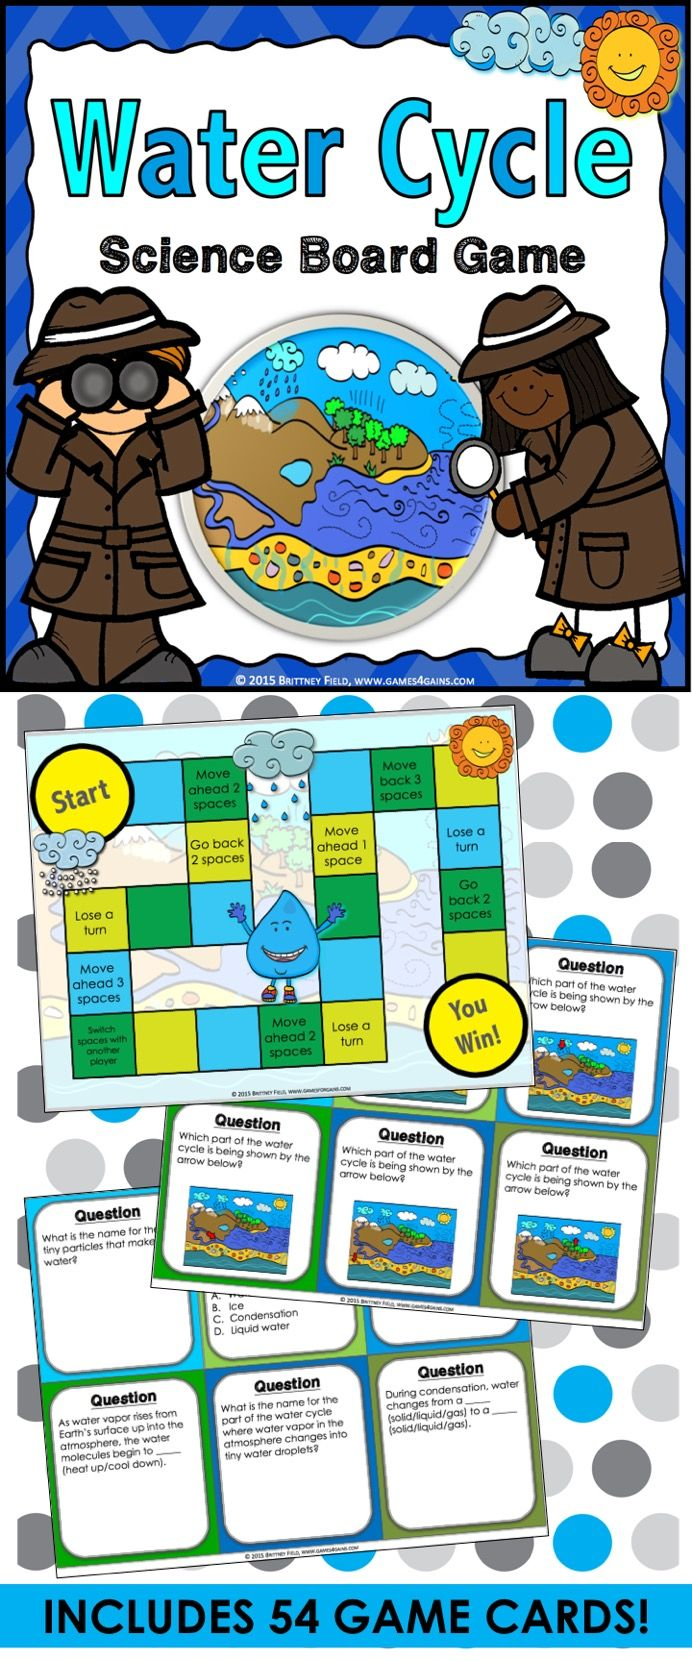 medium resolution of water cycle water cycle game contains 54 game cards and a game board to help students practice key vocabulary and concepts related to the water cycle